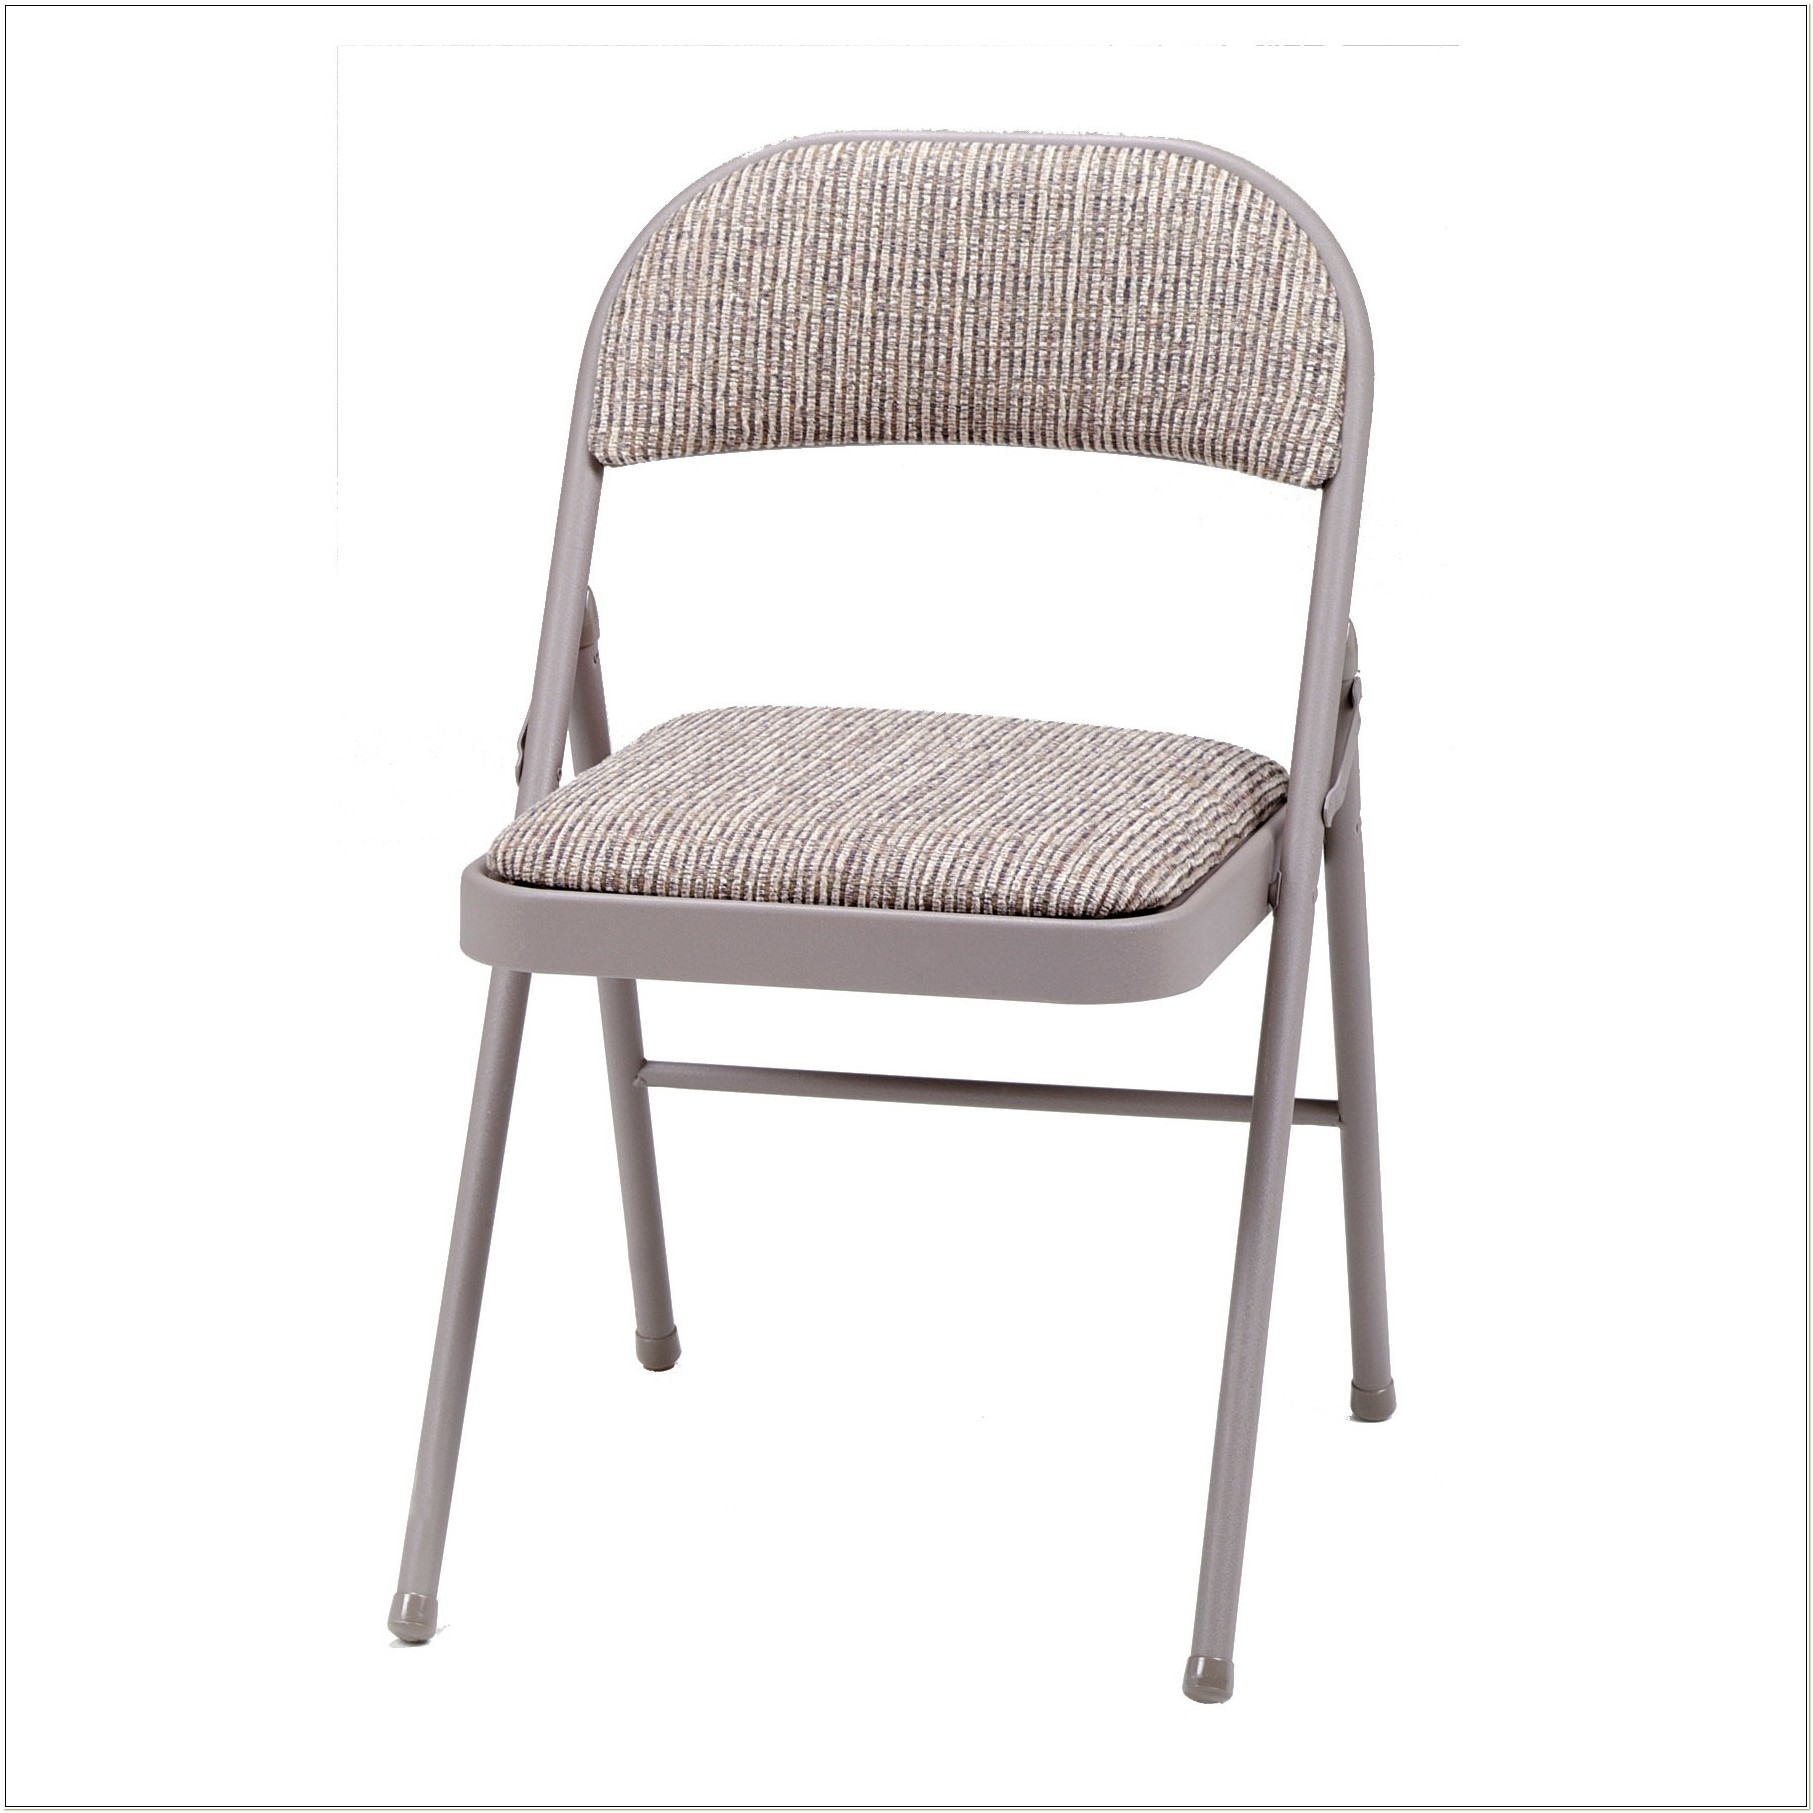 Sudden Comfort Folding Chair Weight Limit